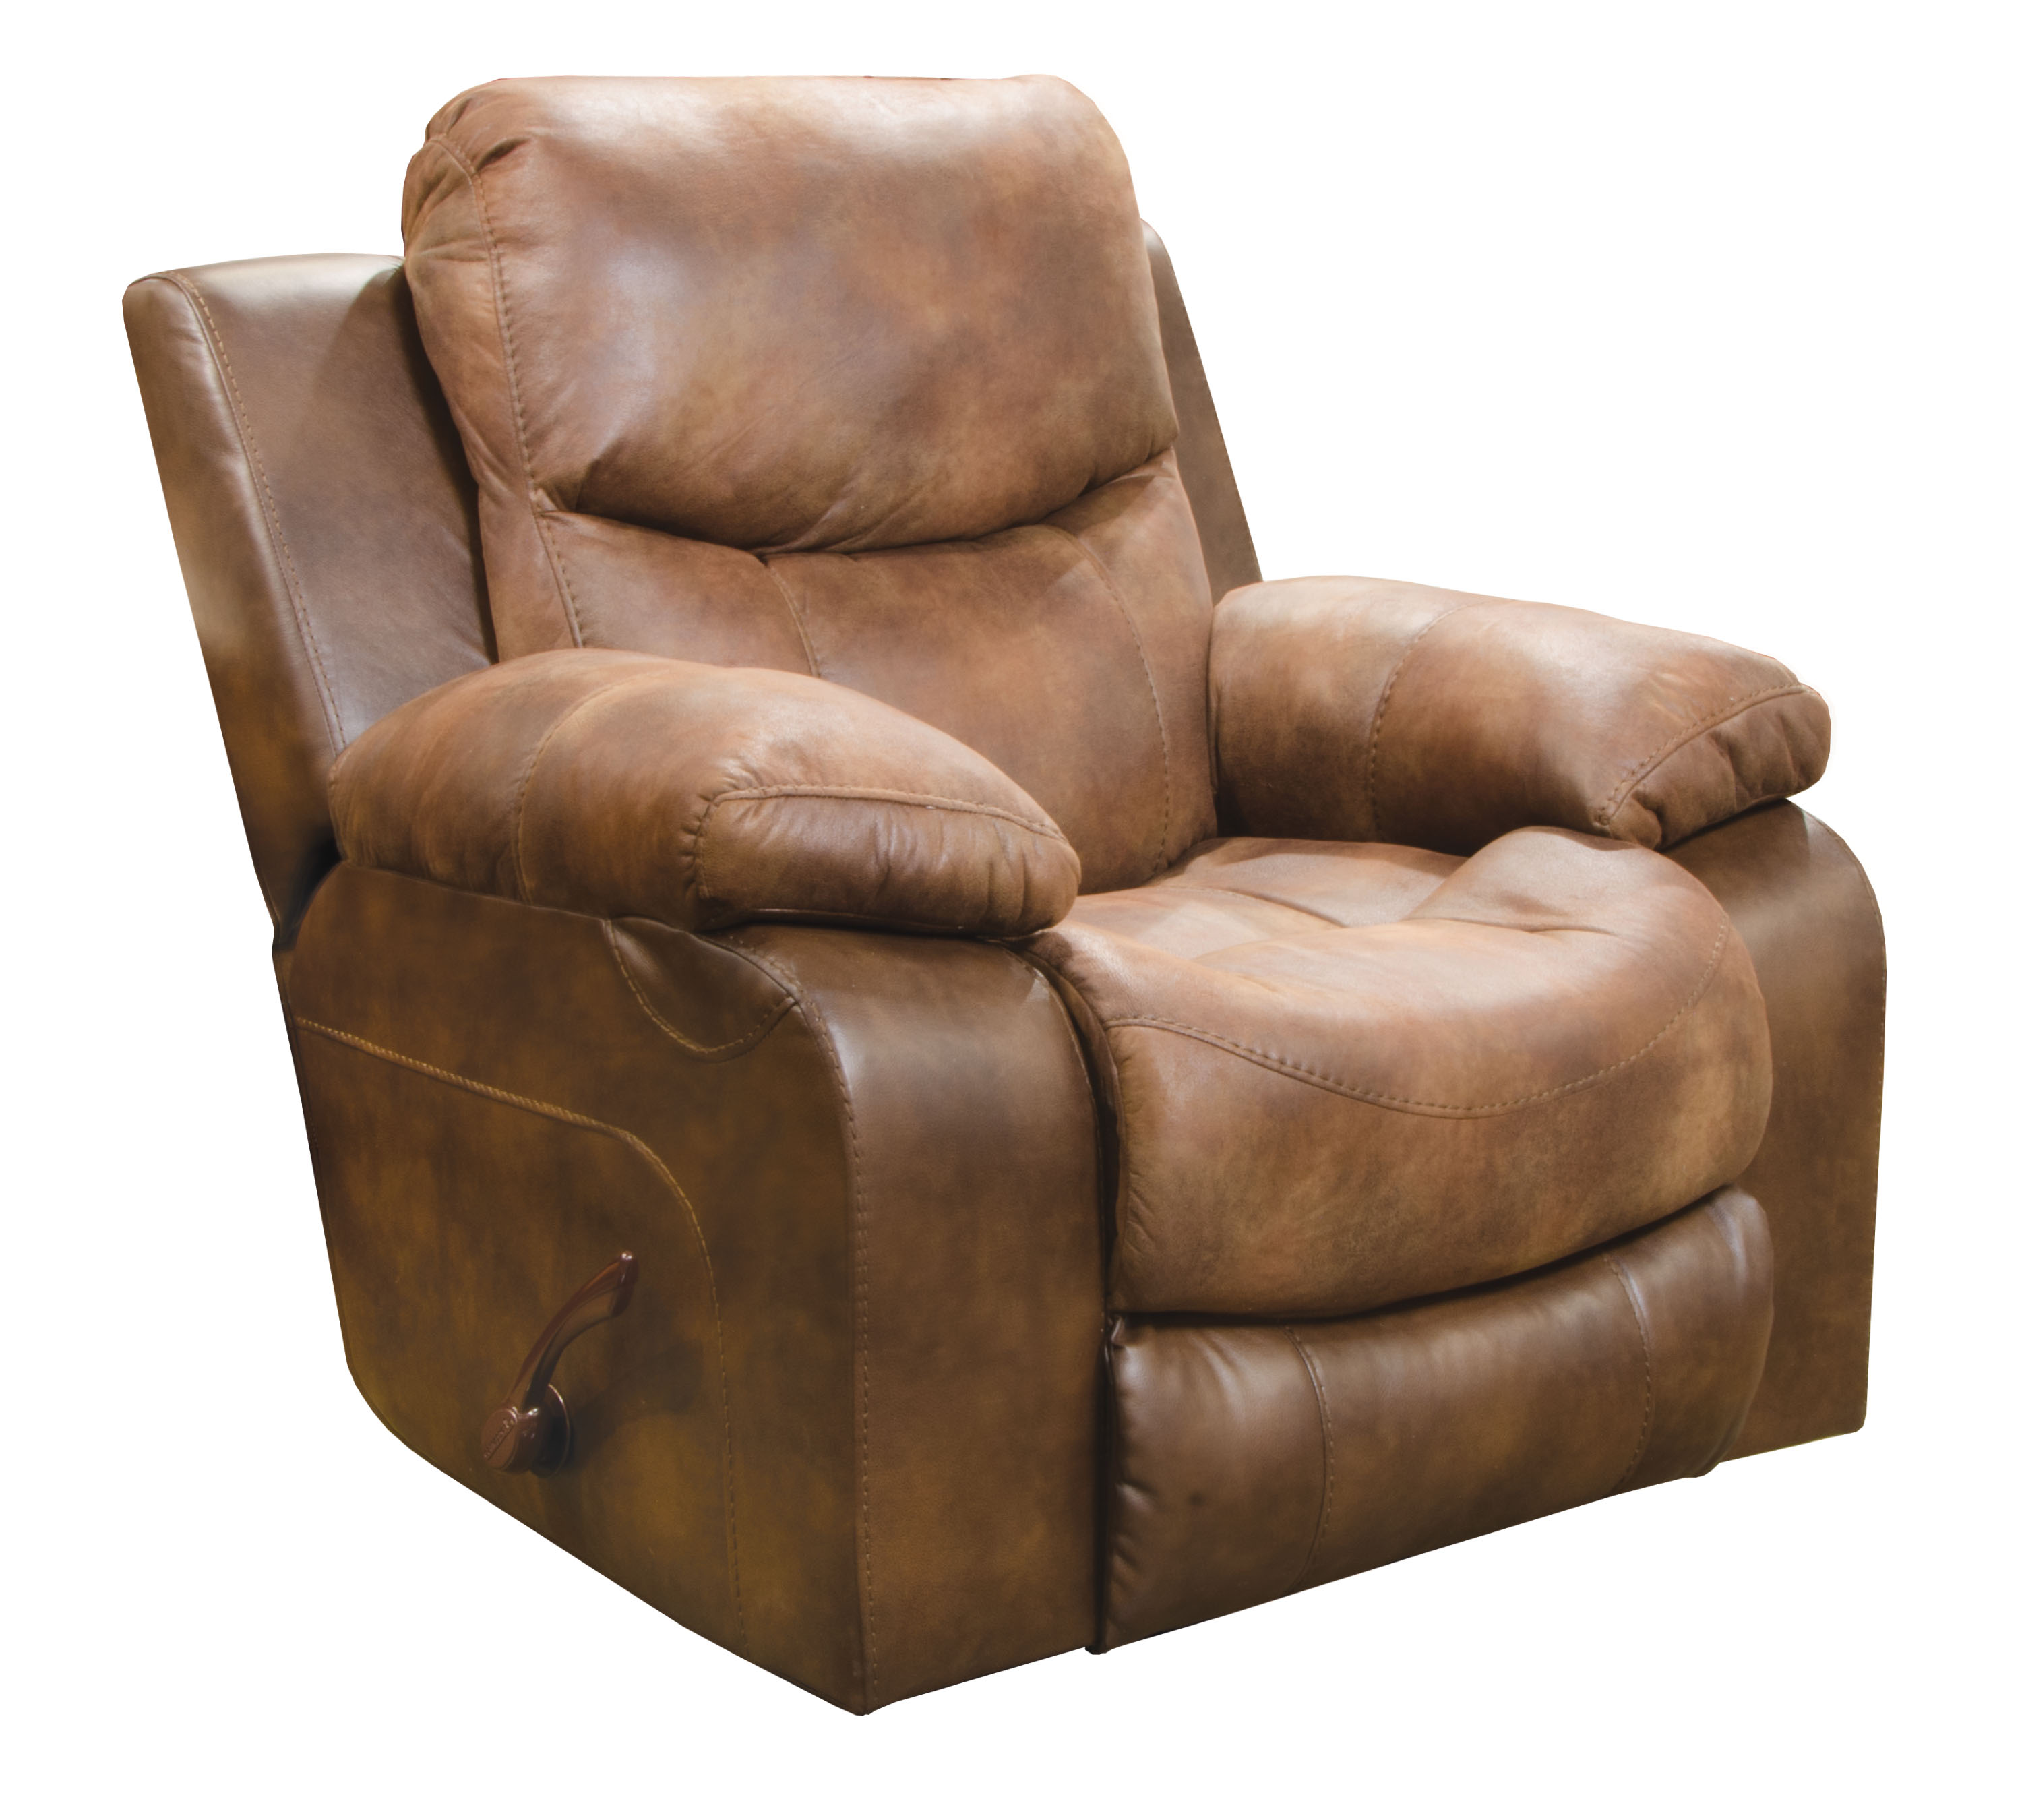 435 Sunset Recliner